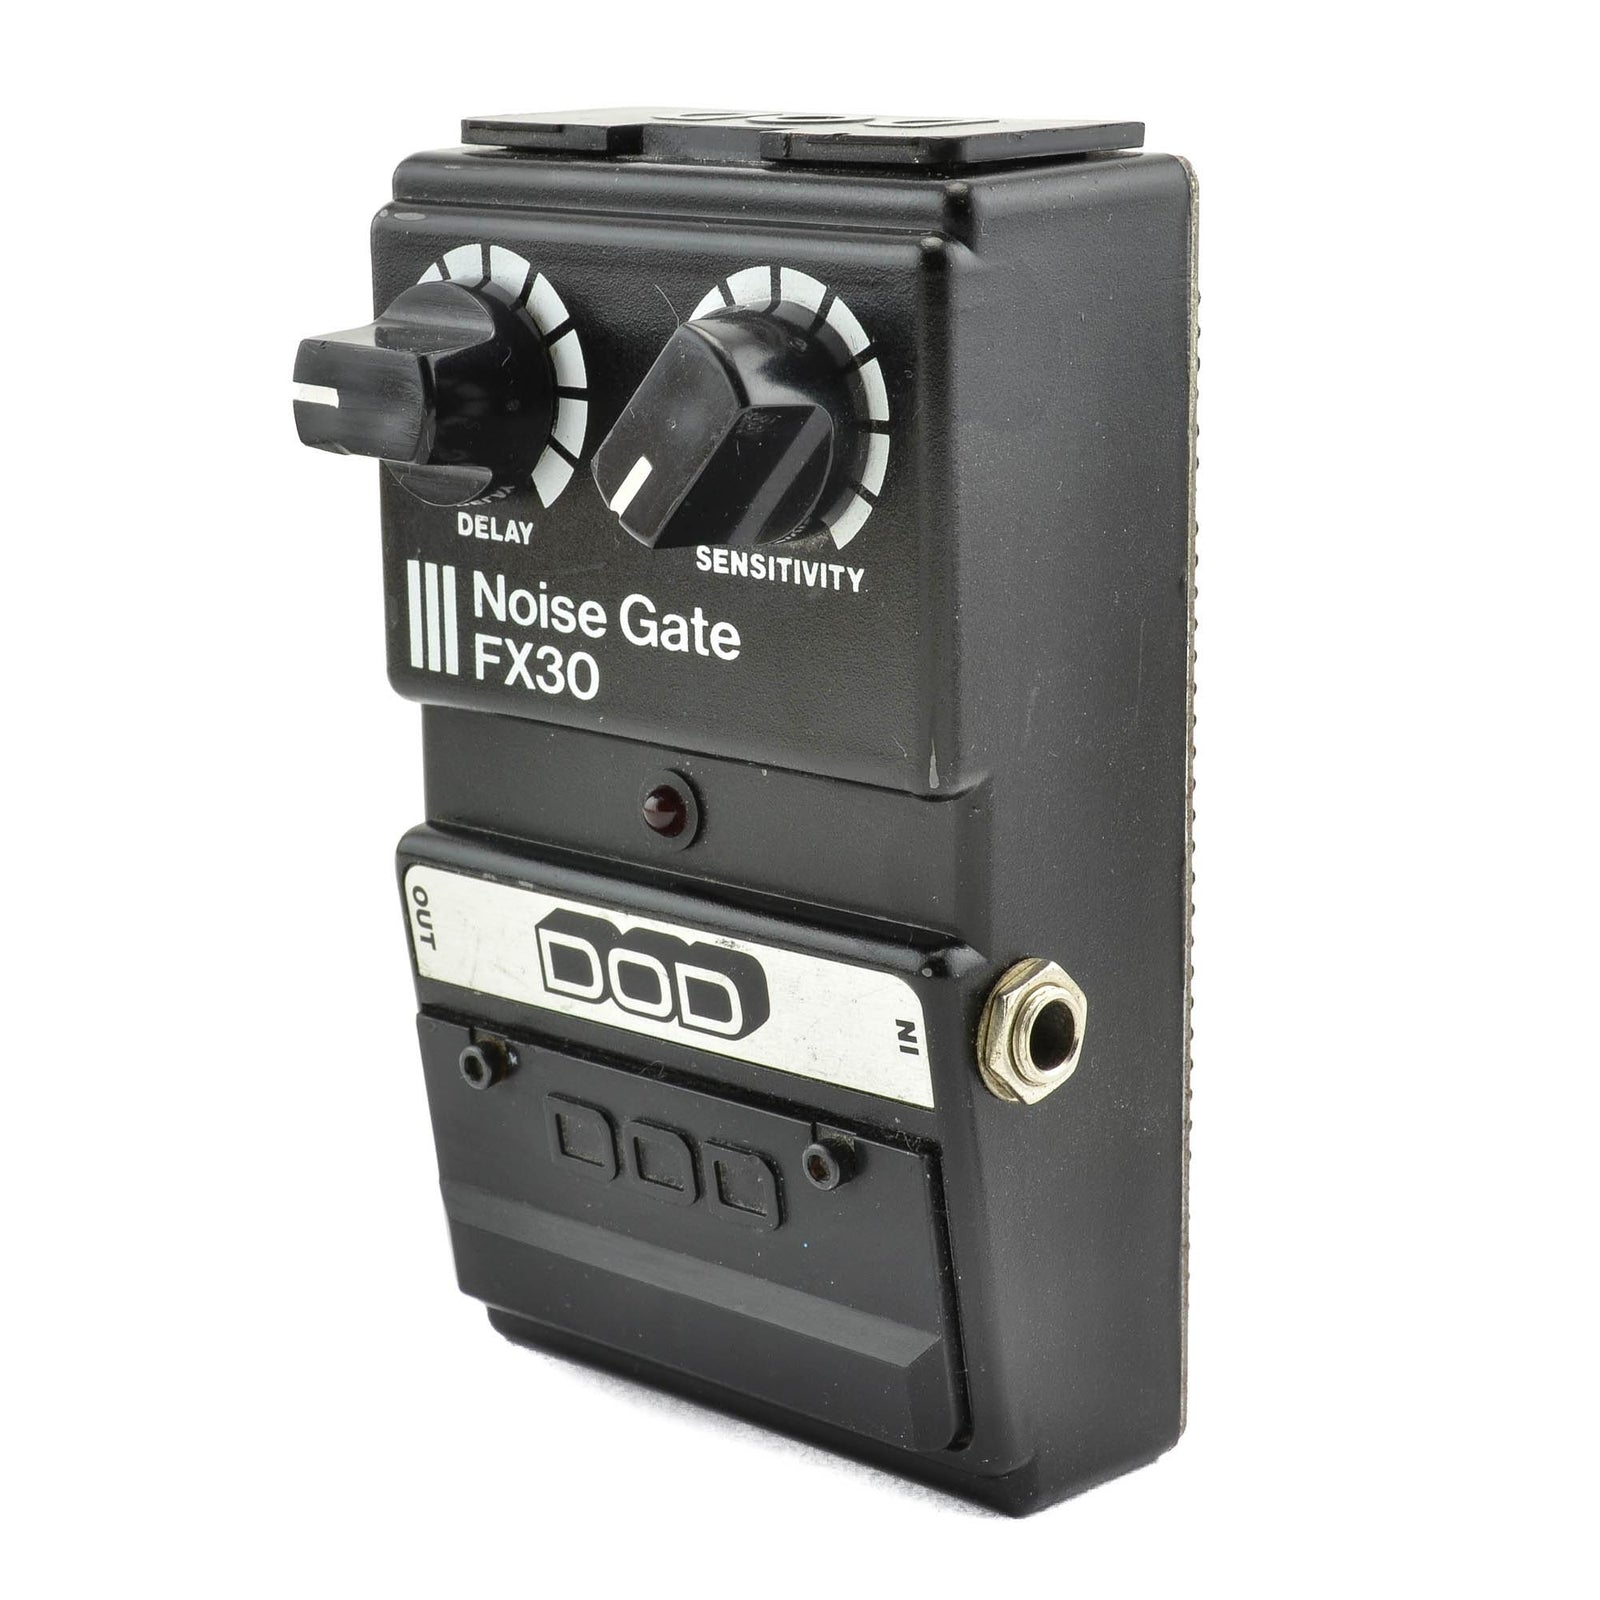 DOD FX30 Gate - Used